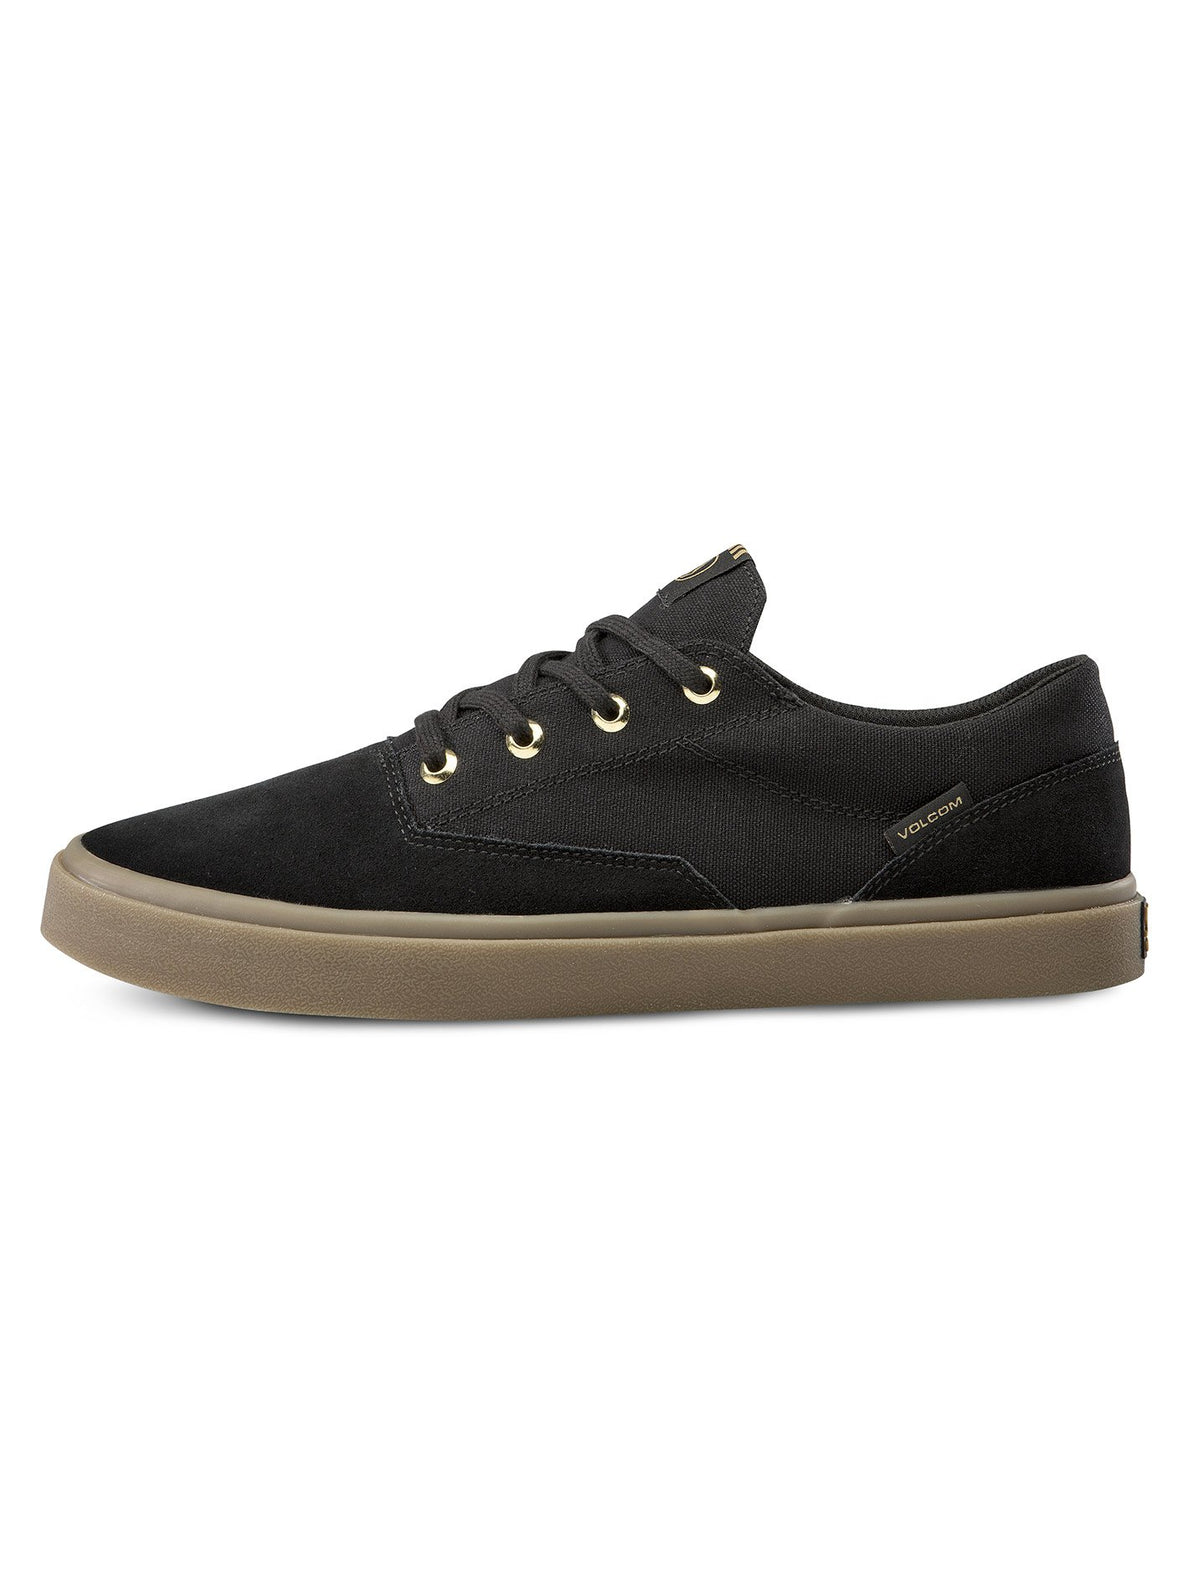 Draw Lo Suede Shoe - Black Out (V4011899_BKO) [1]